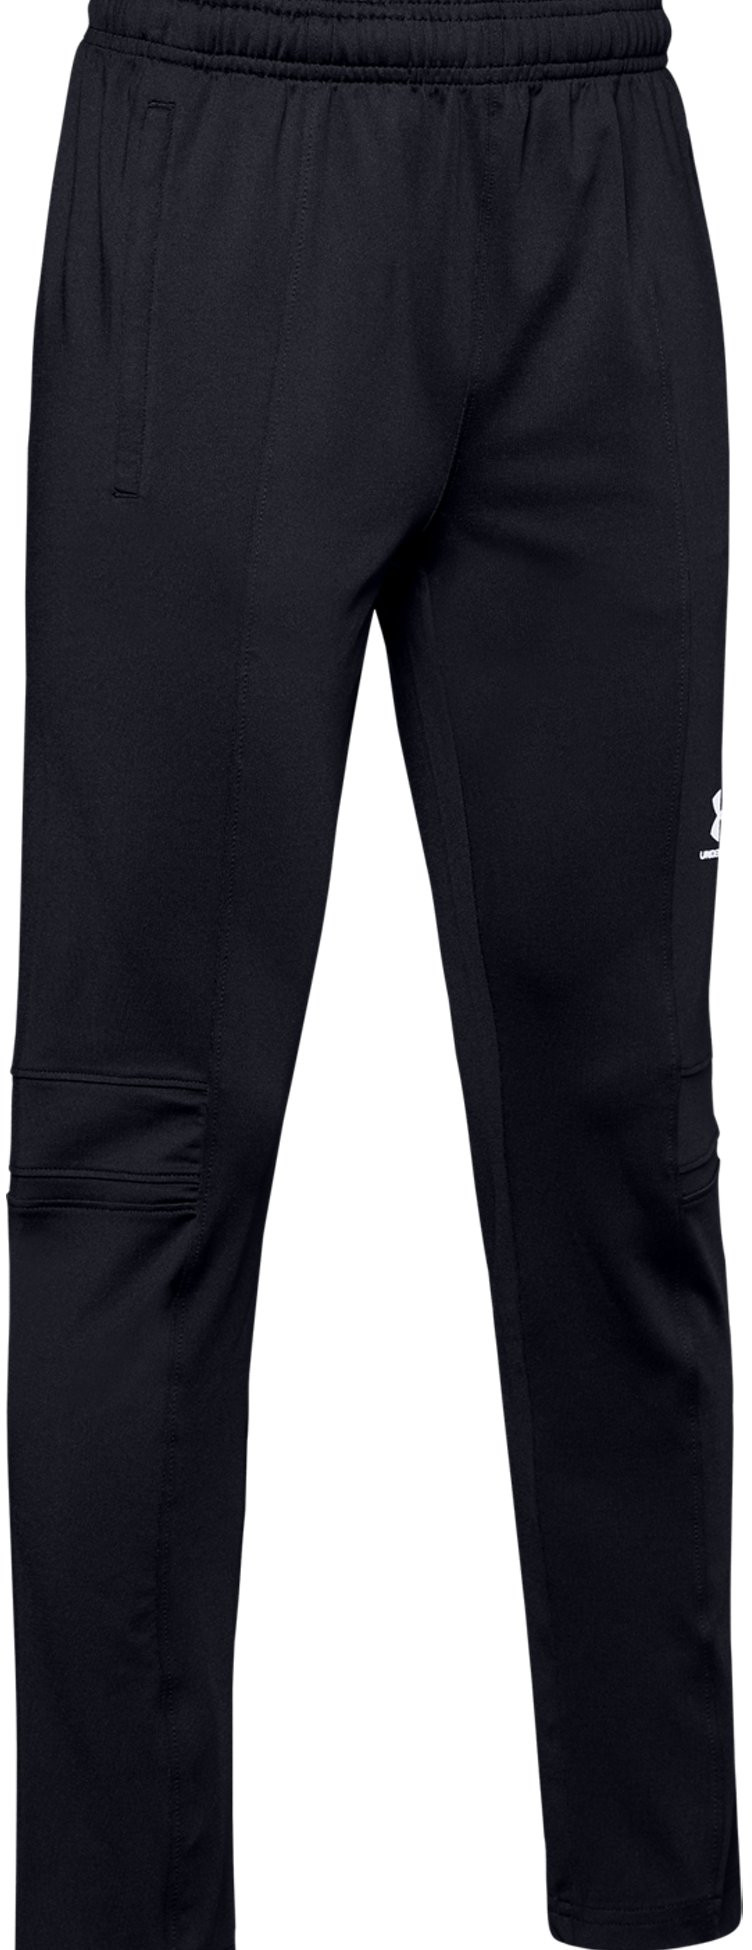 Hose Under Armour Y Challenger III Train Pant